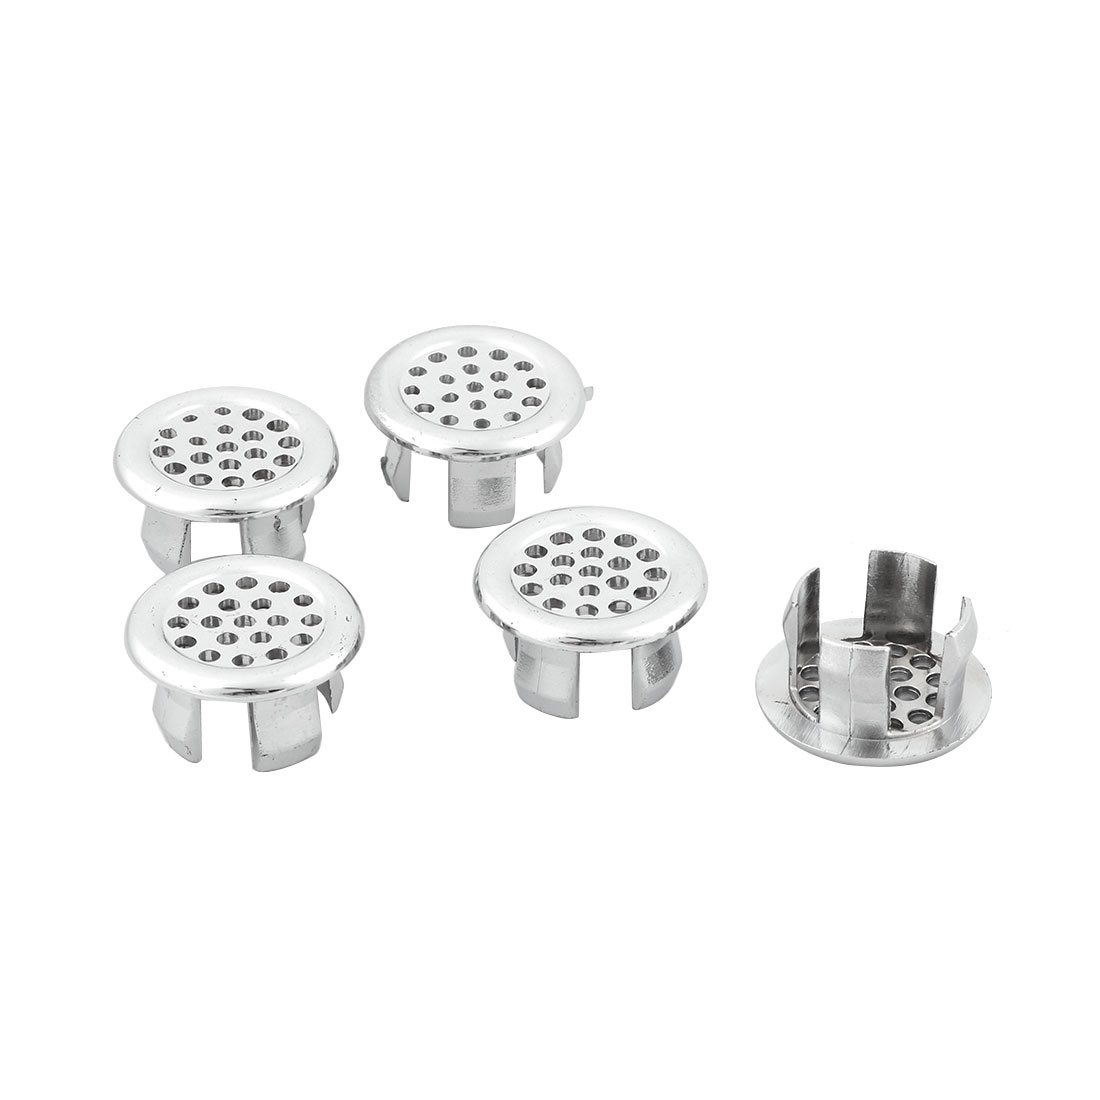 Household Basin Round Shaped Meshy Hole Insert Trim Sink Overflow Cover 5 Pcs